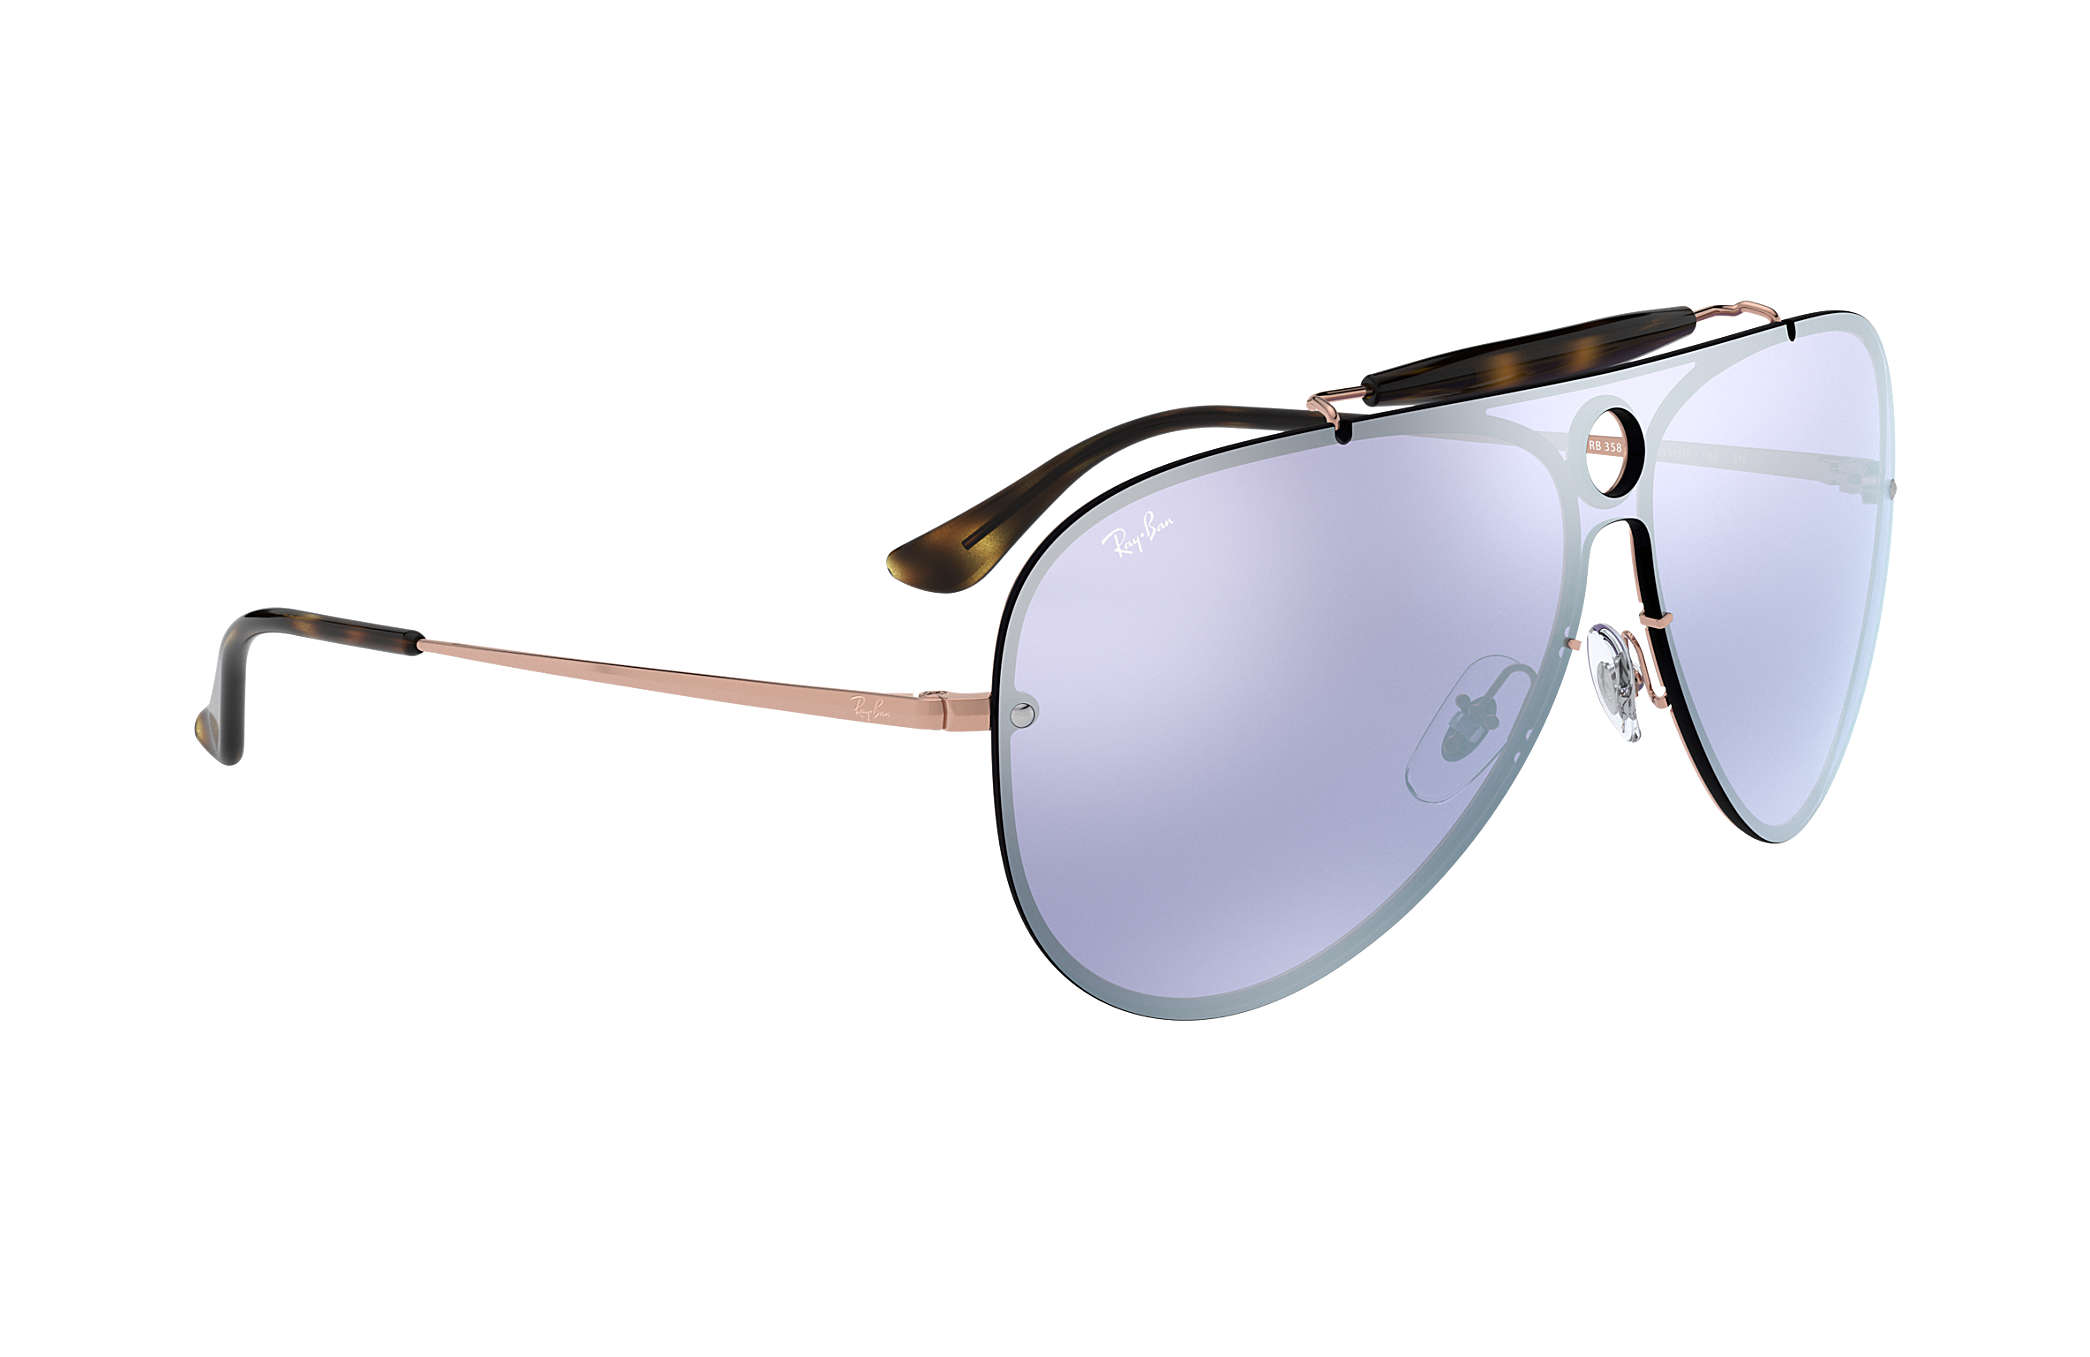 13517a0adbef0 Ray-Ban Blaze Shooter RB3581N Bronze-Copper - Metal - Violet Lenses ...